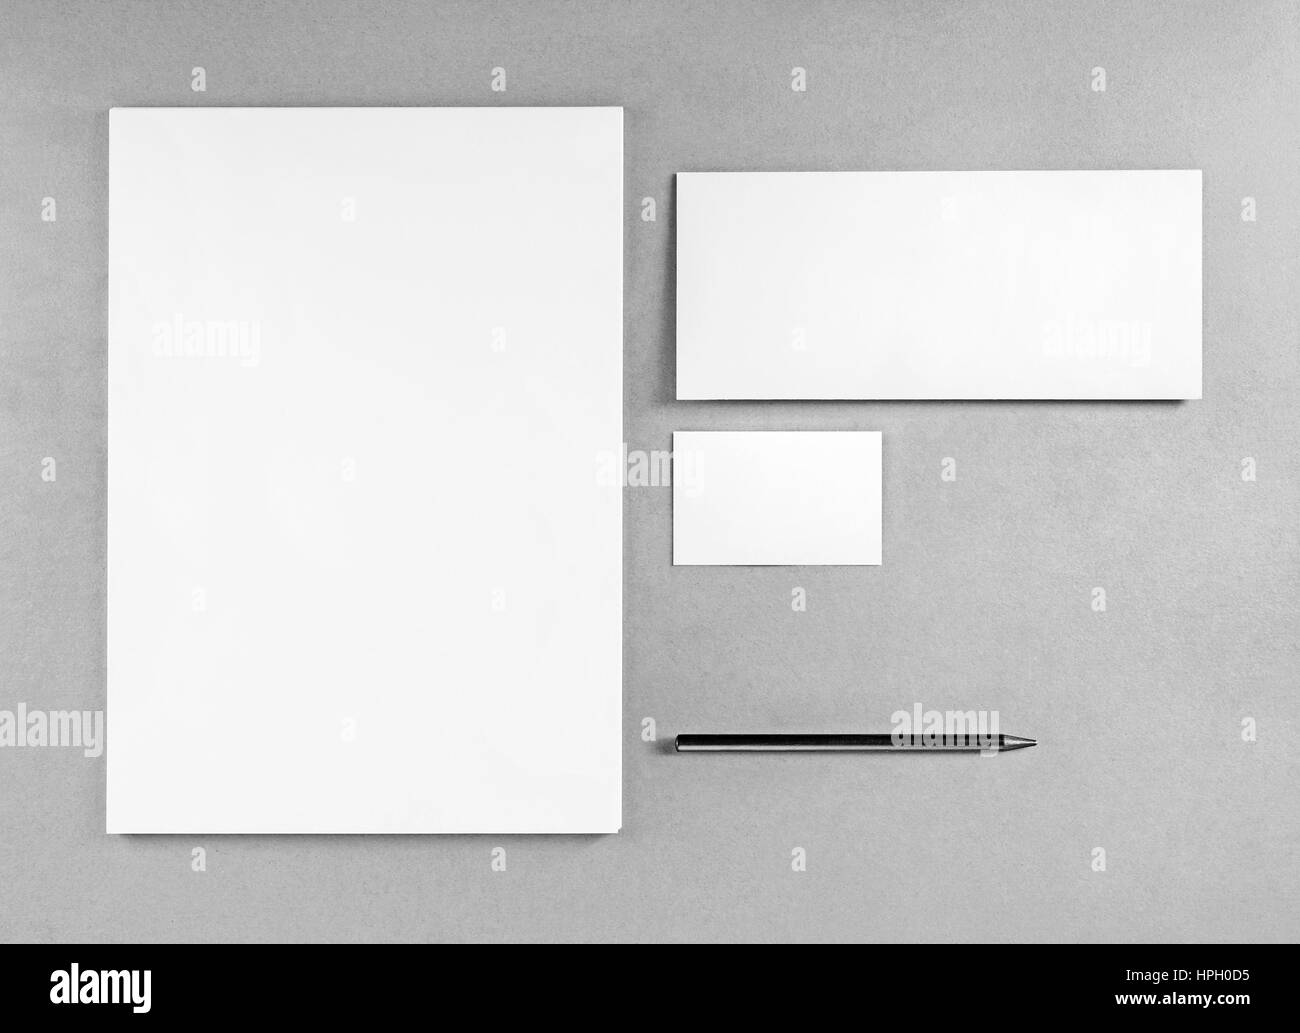 Clean simple modern business card template stock vector (royalty.